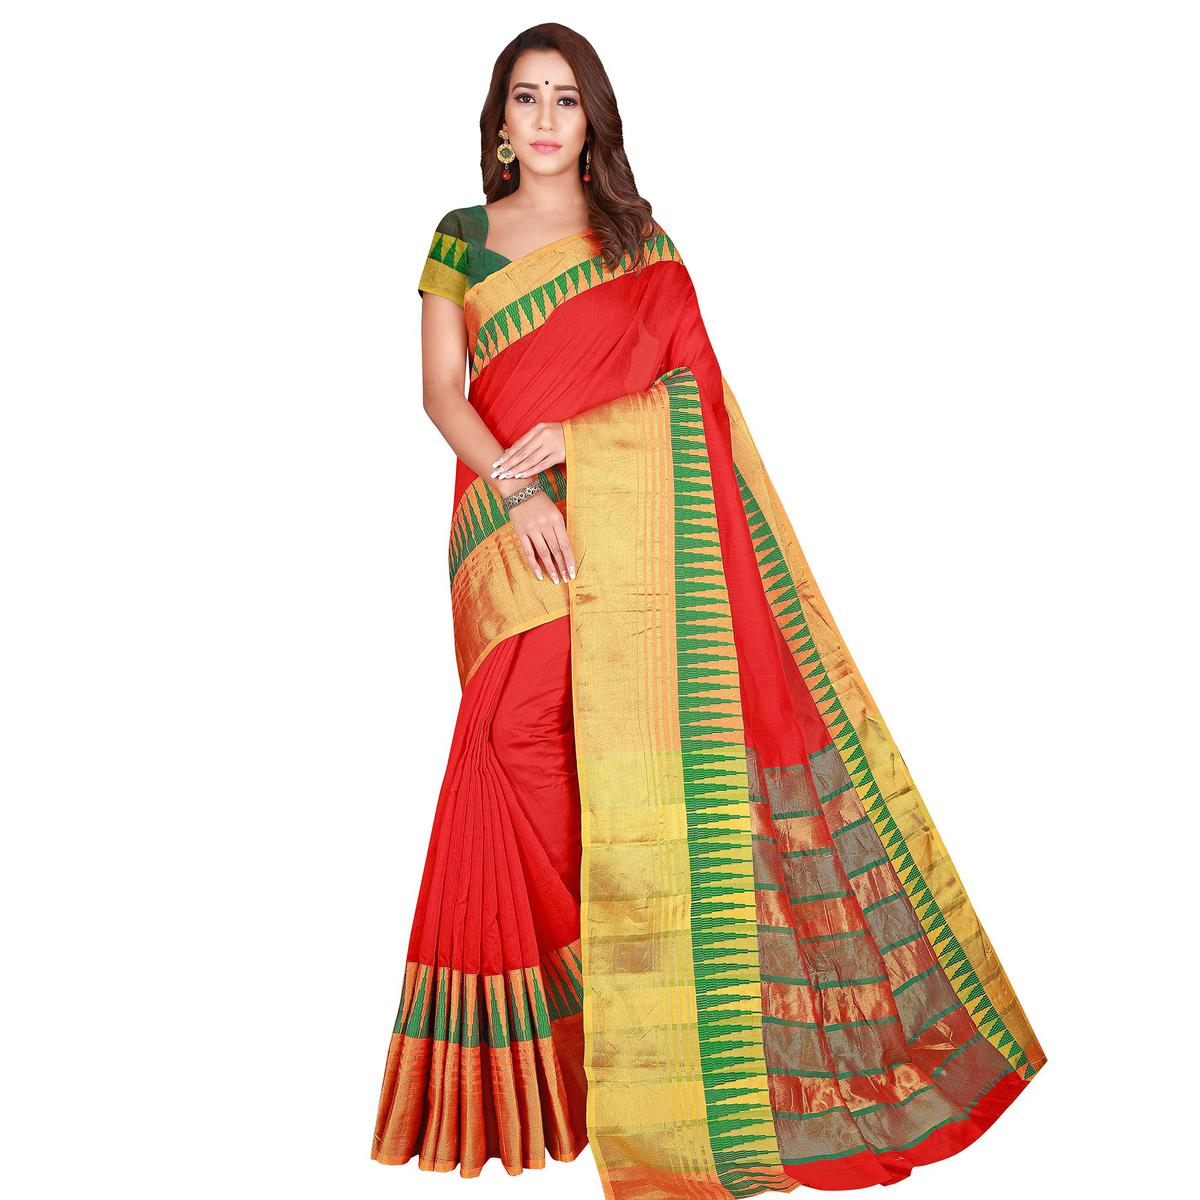 Energetic Red Colored Casual Wear Printed Cotton Handloom Saree